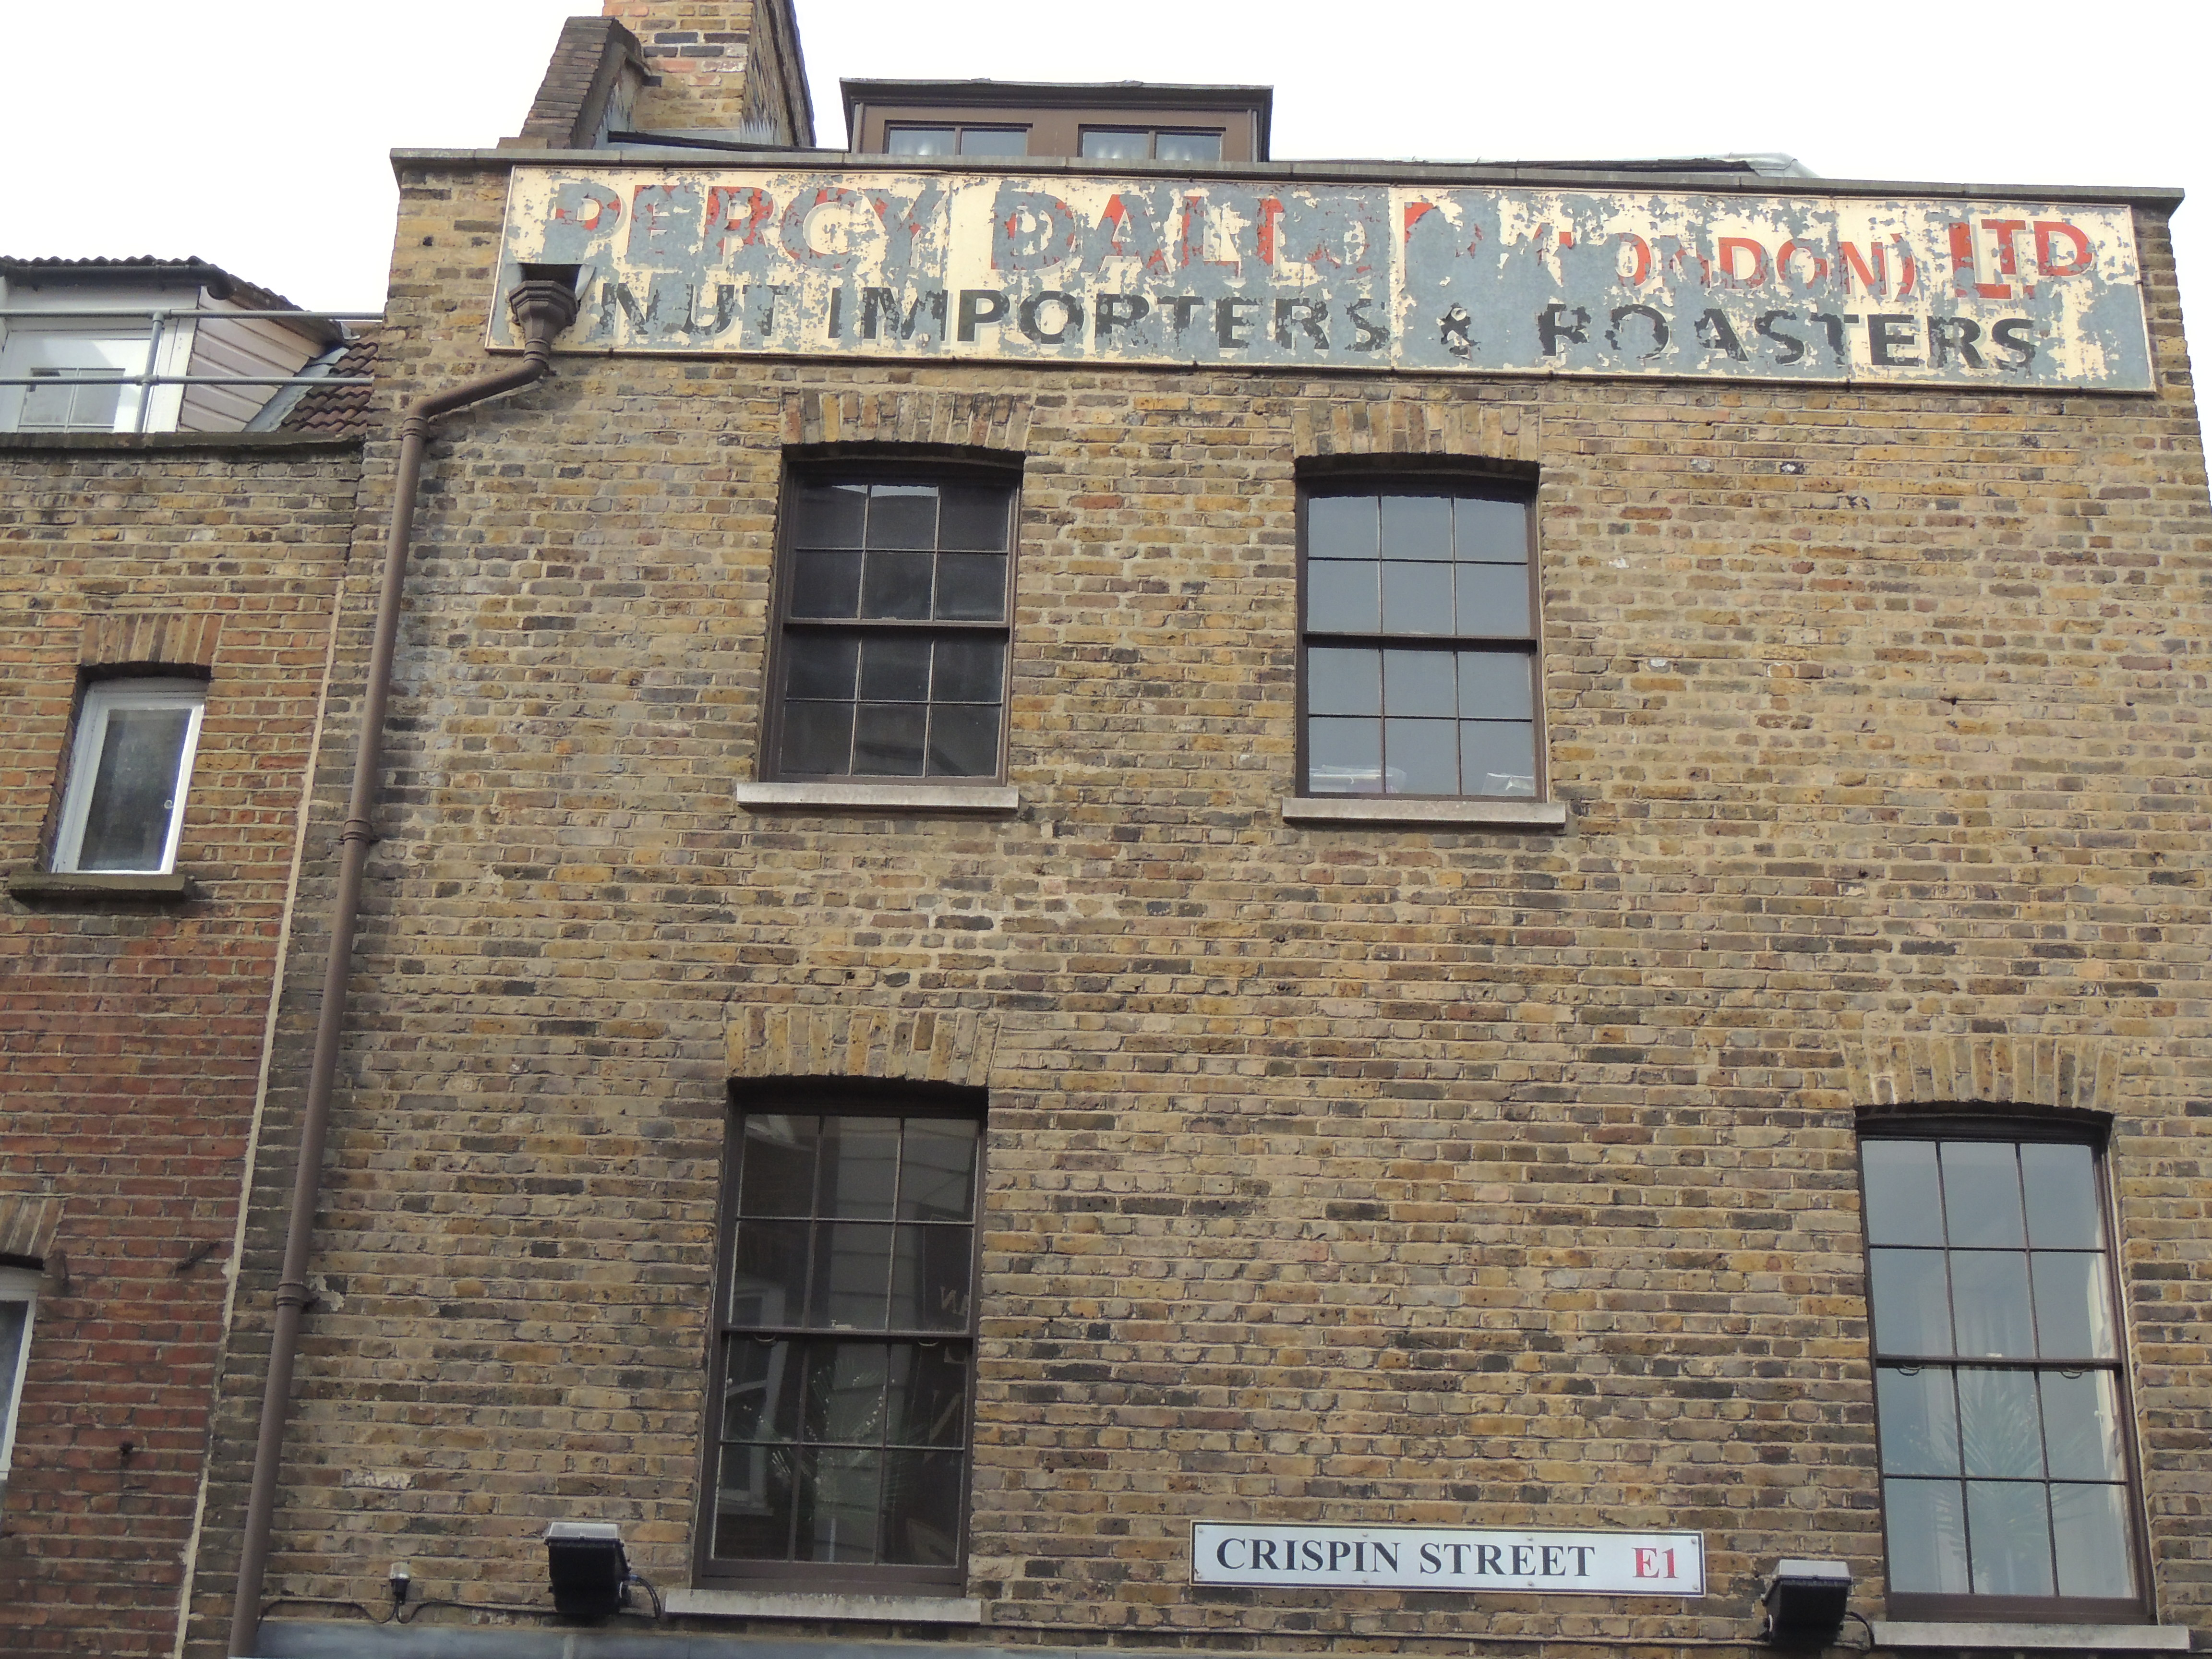 The original advertisement of the nut importers beside the paper bags factory, how convenient!